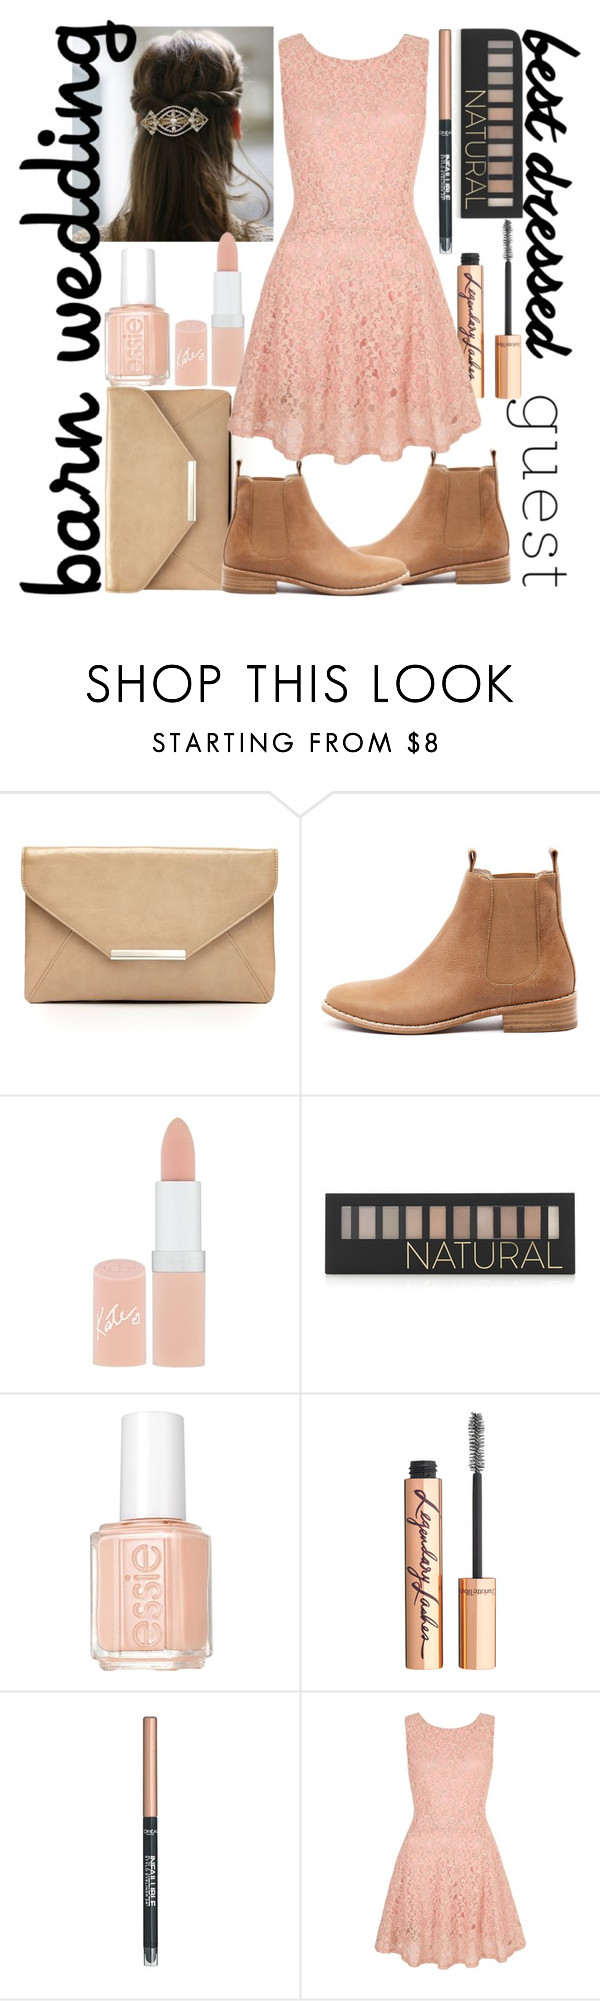 """Barn Wedding"" by monochromedivine ❤ liked on Polyvore featuring Style & Co., Mollini, Rimmel, Forever 21, Essie, Charlotte Tilbury, L'Oréal Paris, Yumi, bestdressedguest and barnwedding"